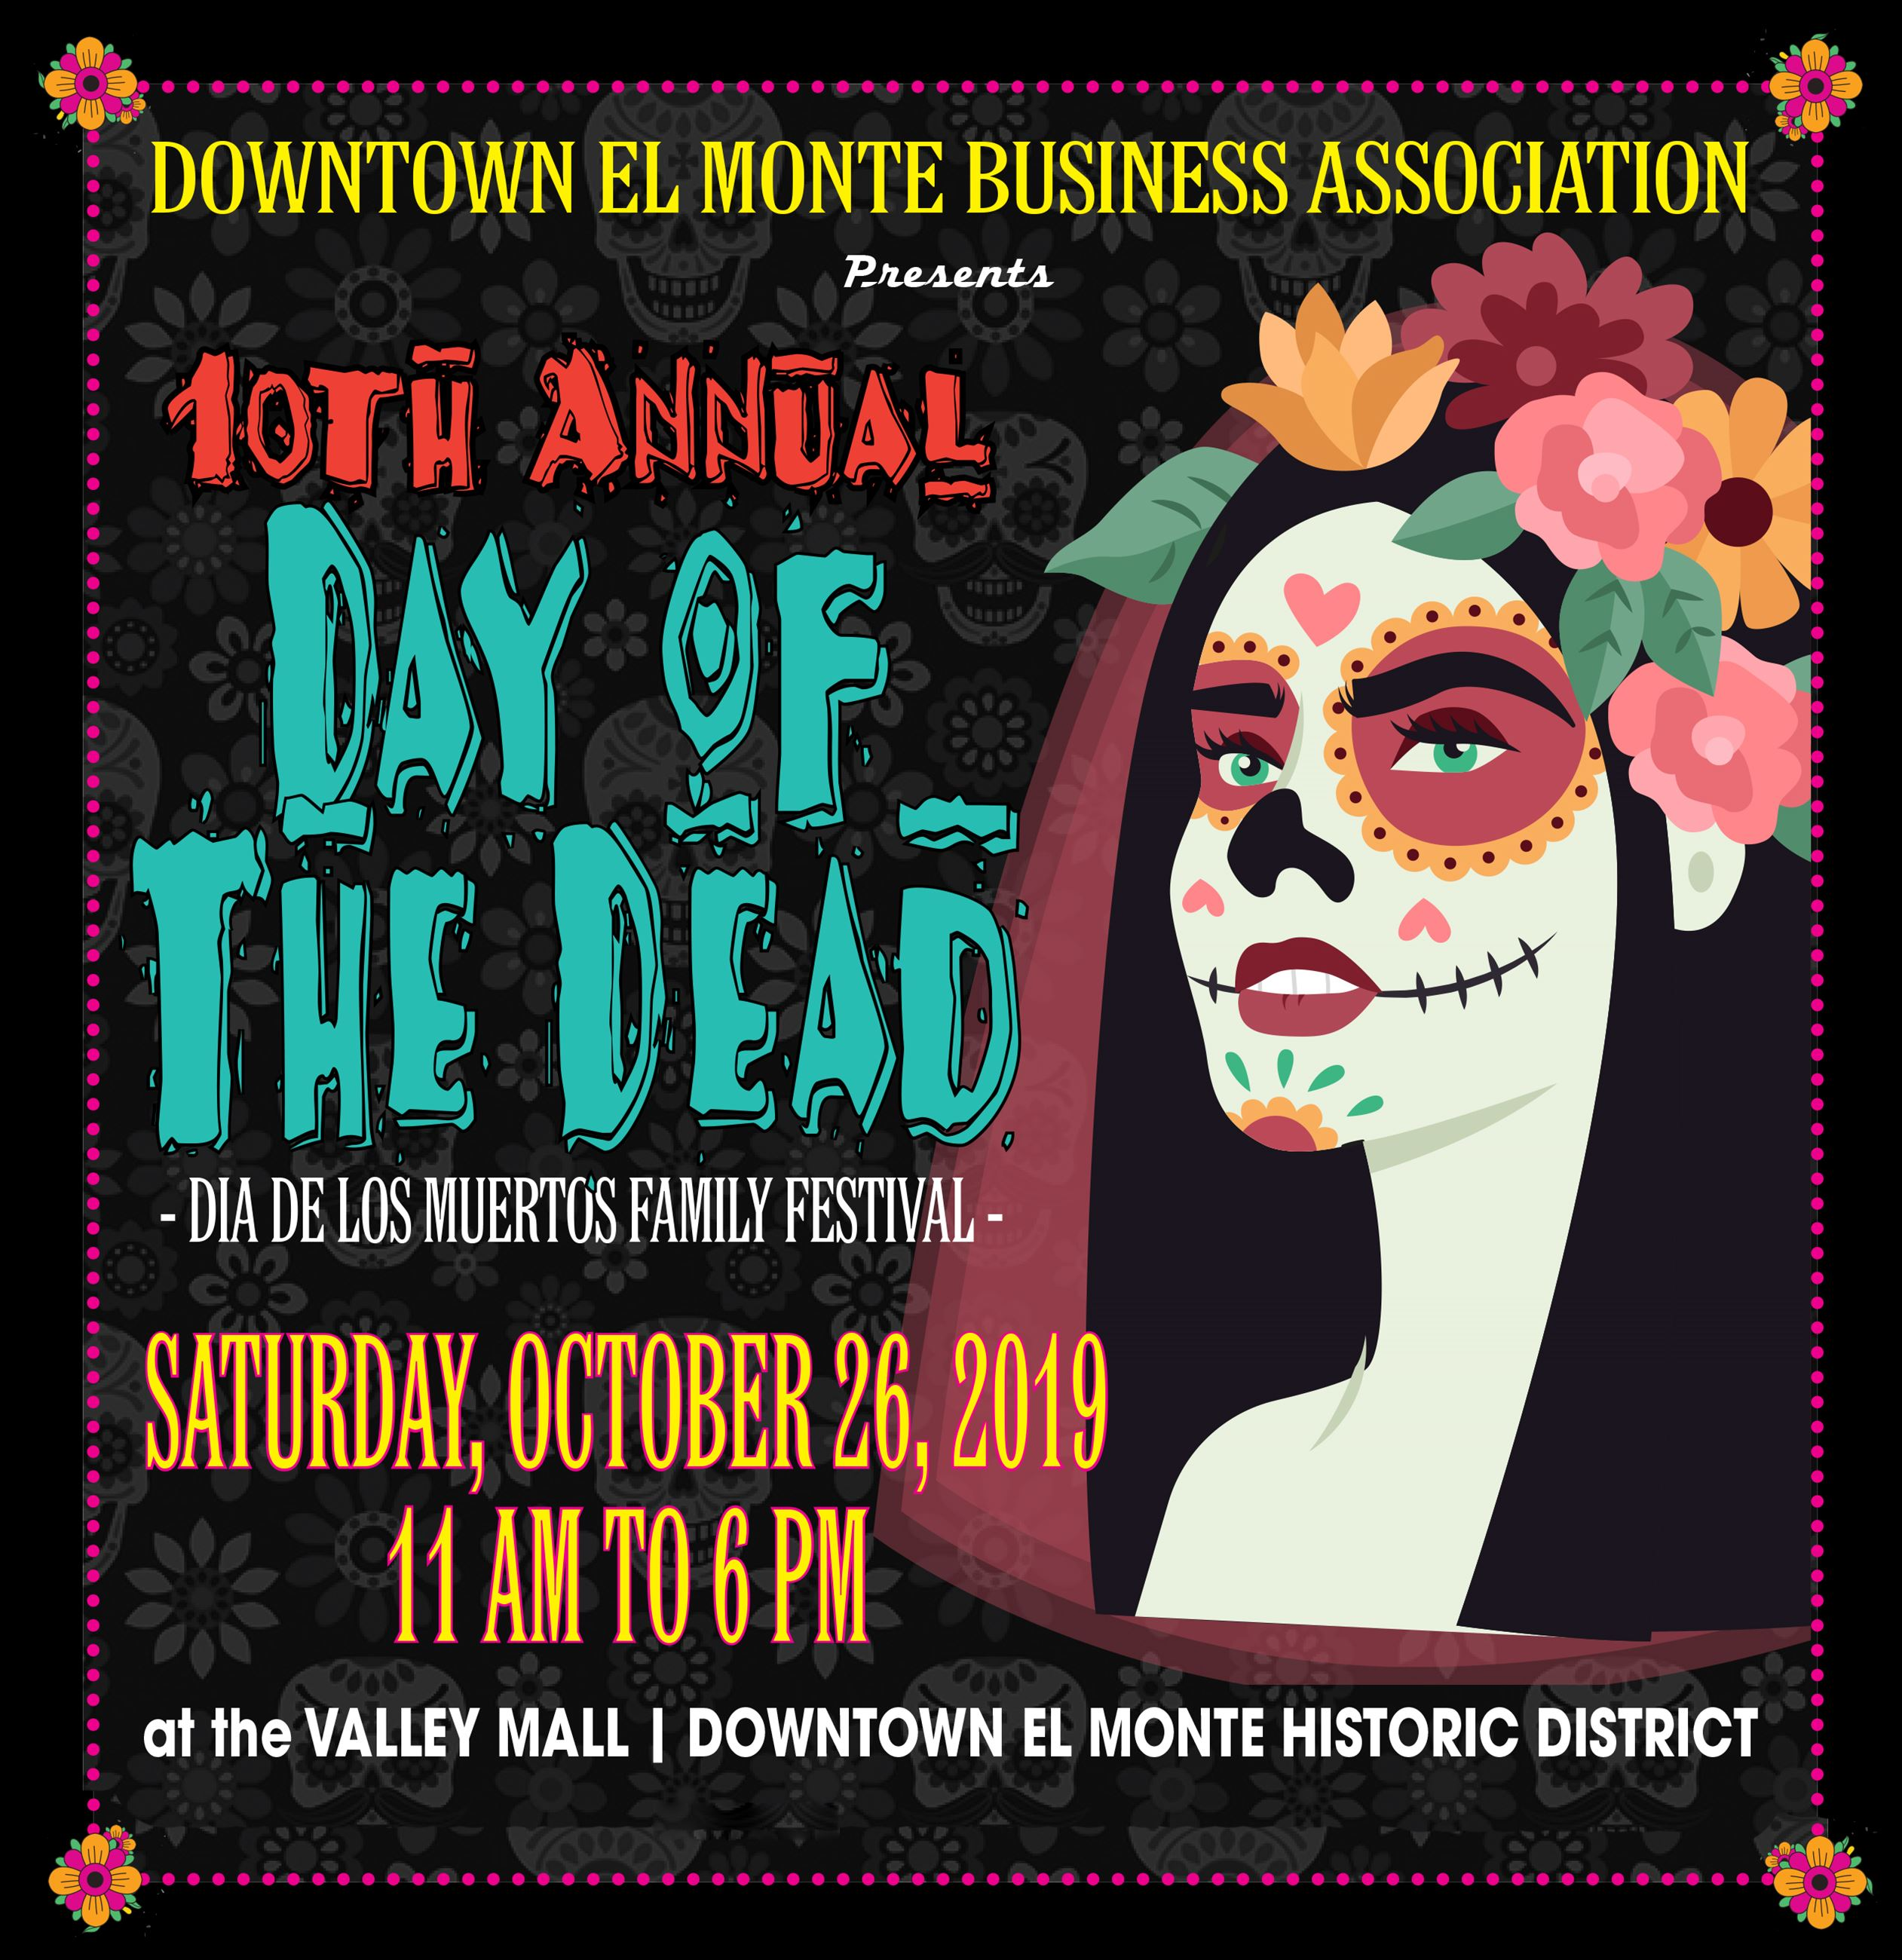 DEMBA Day of the Dead Flyer 2019